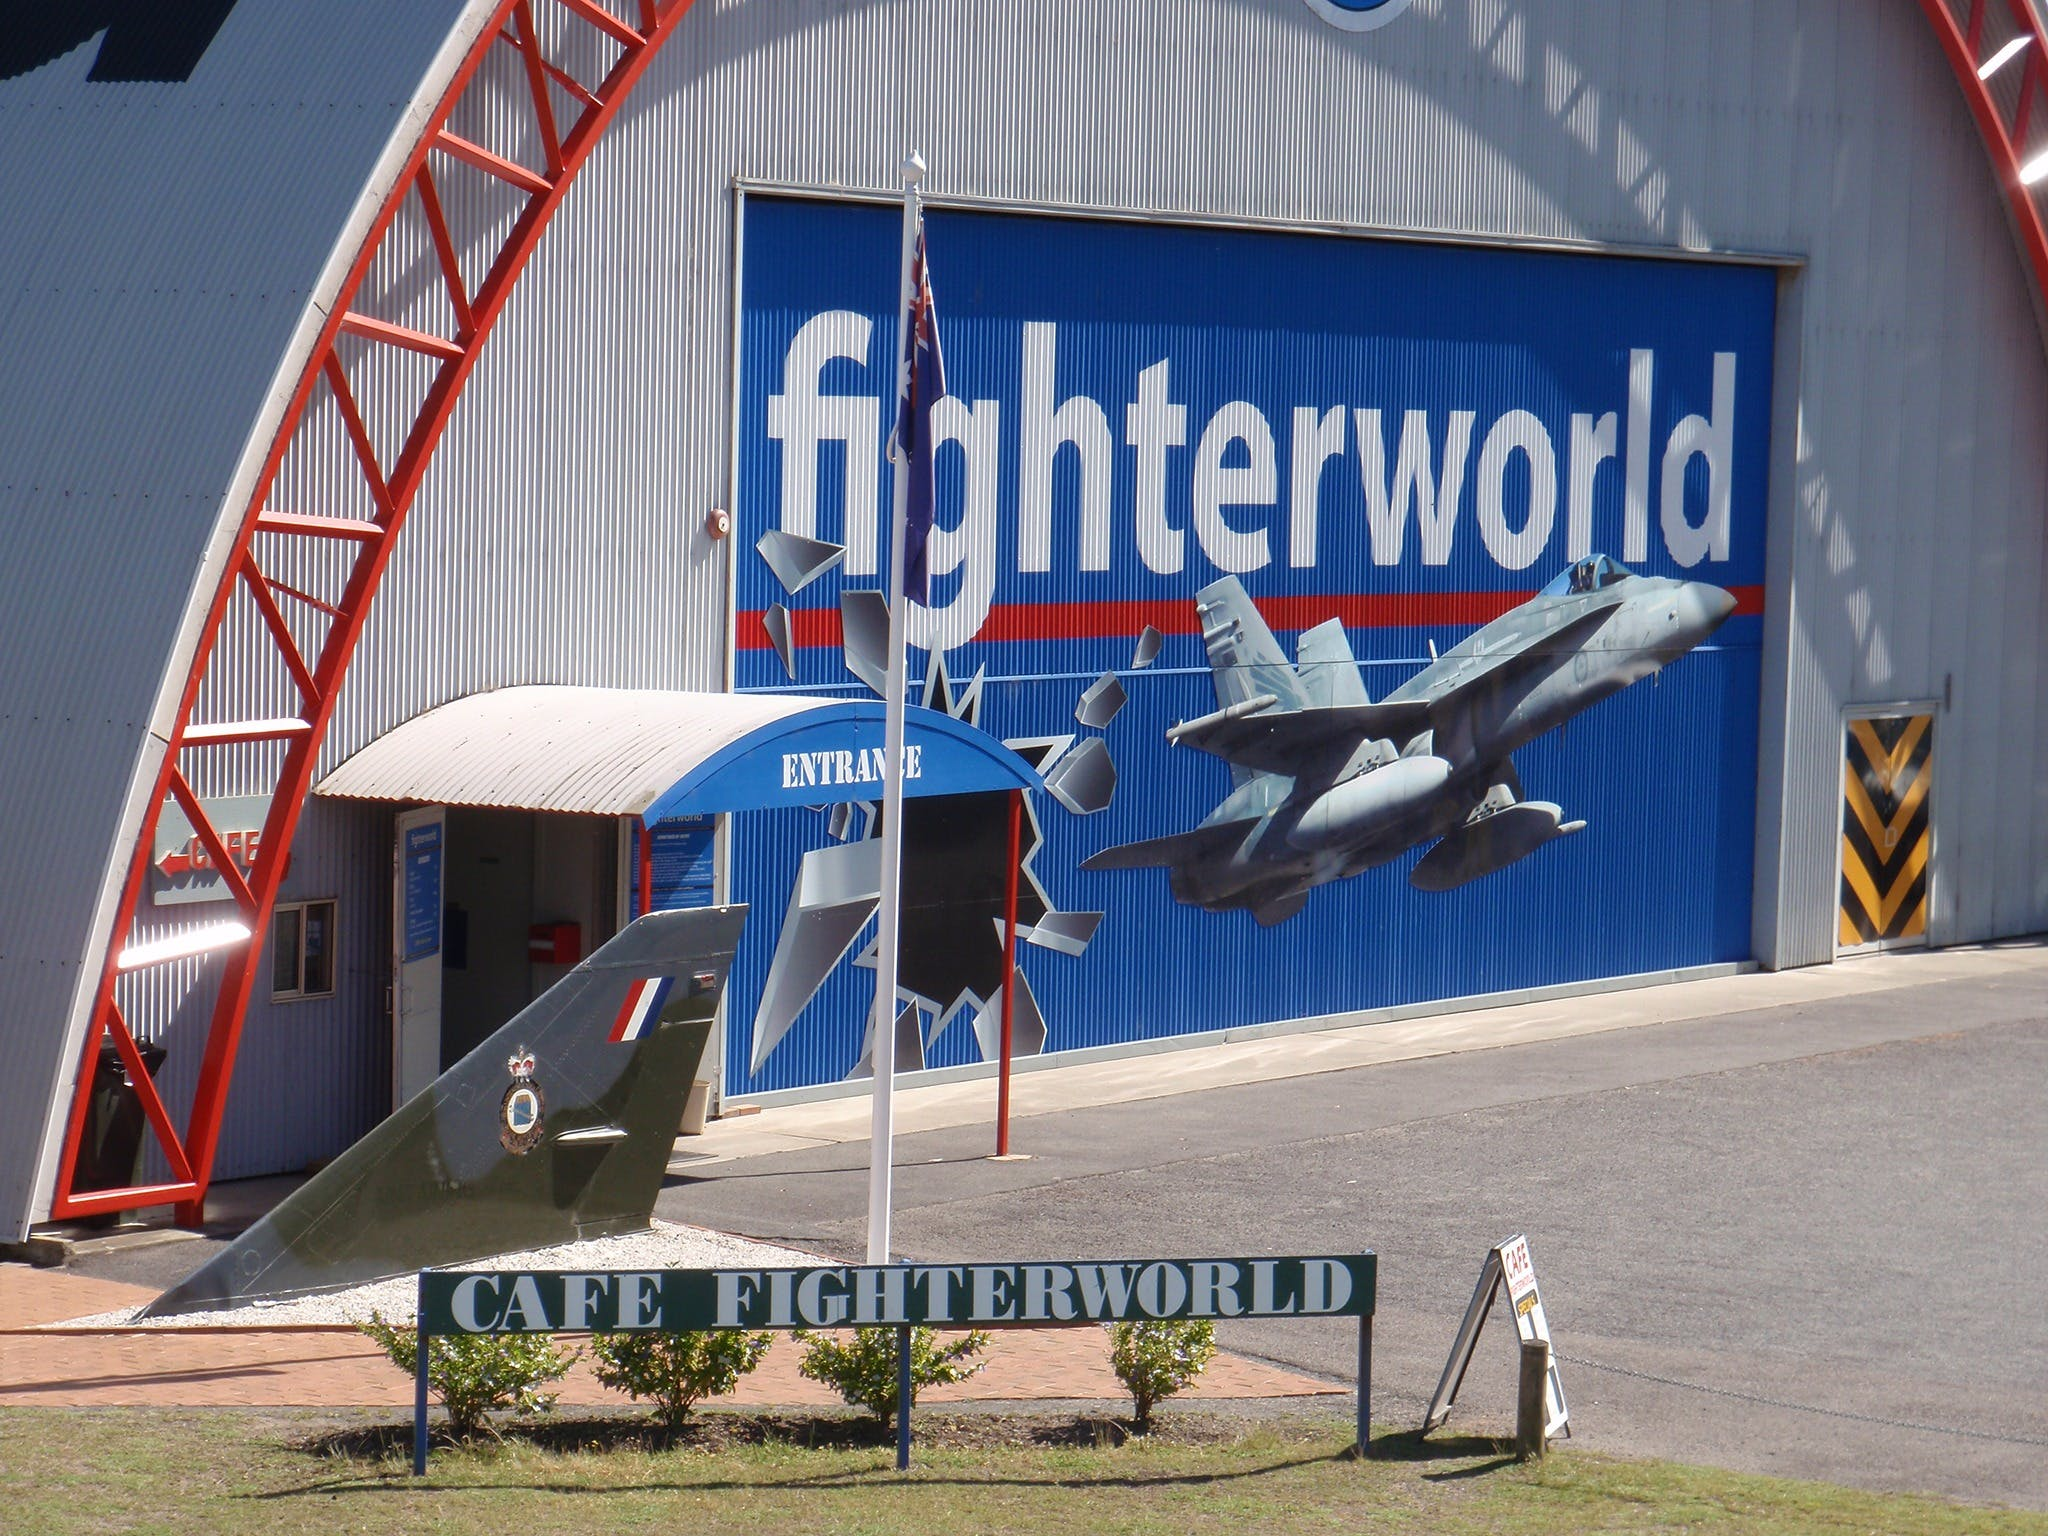 Fighter World - Attractions